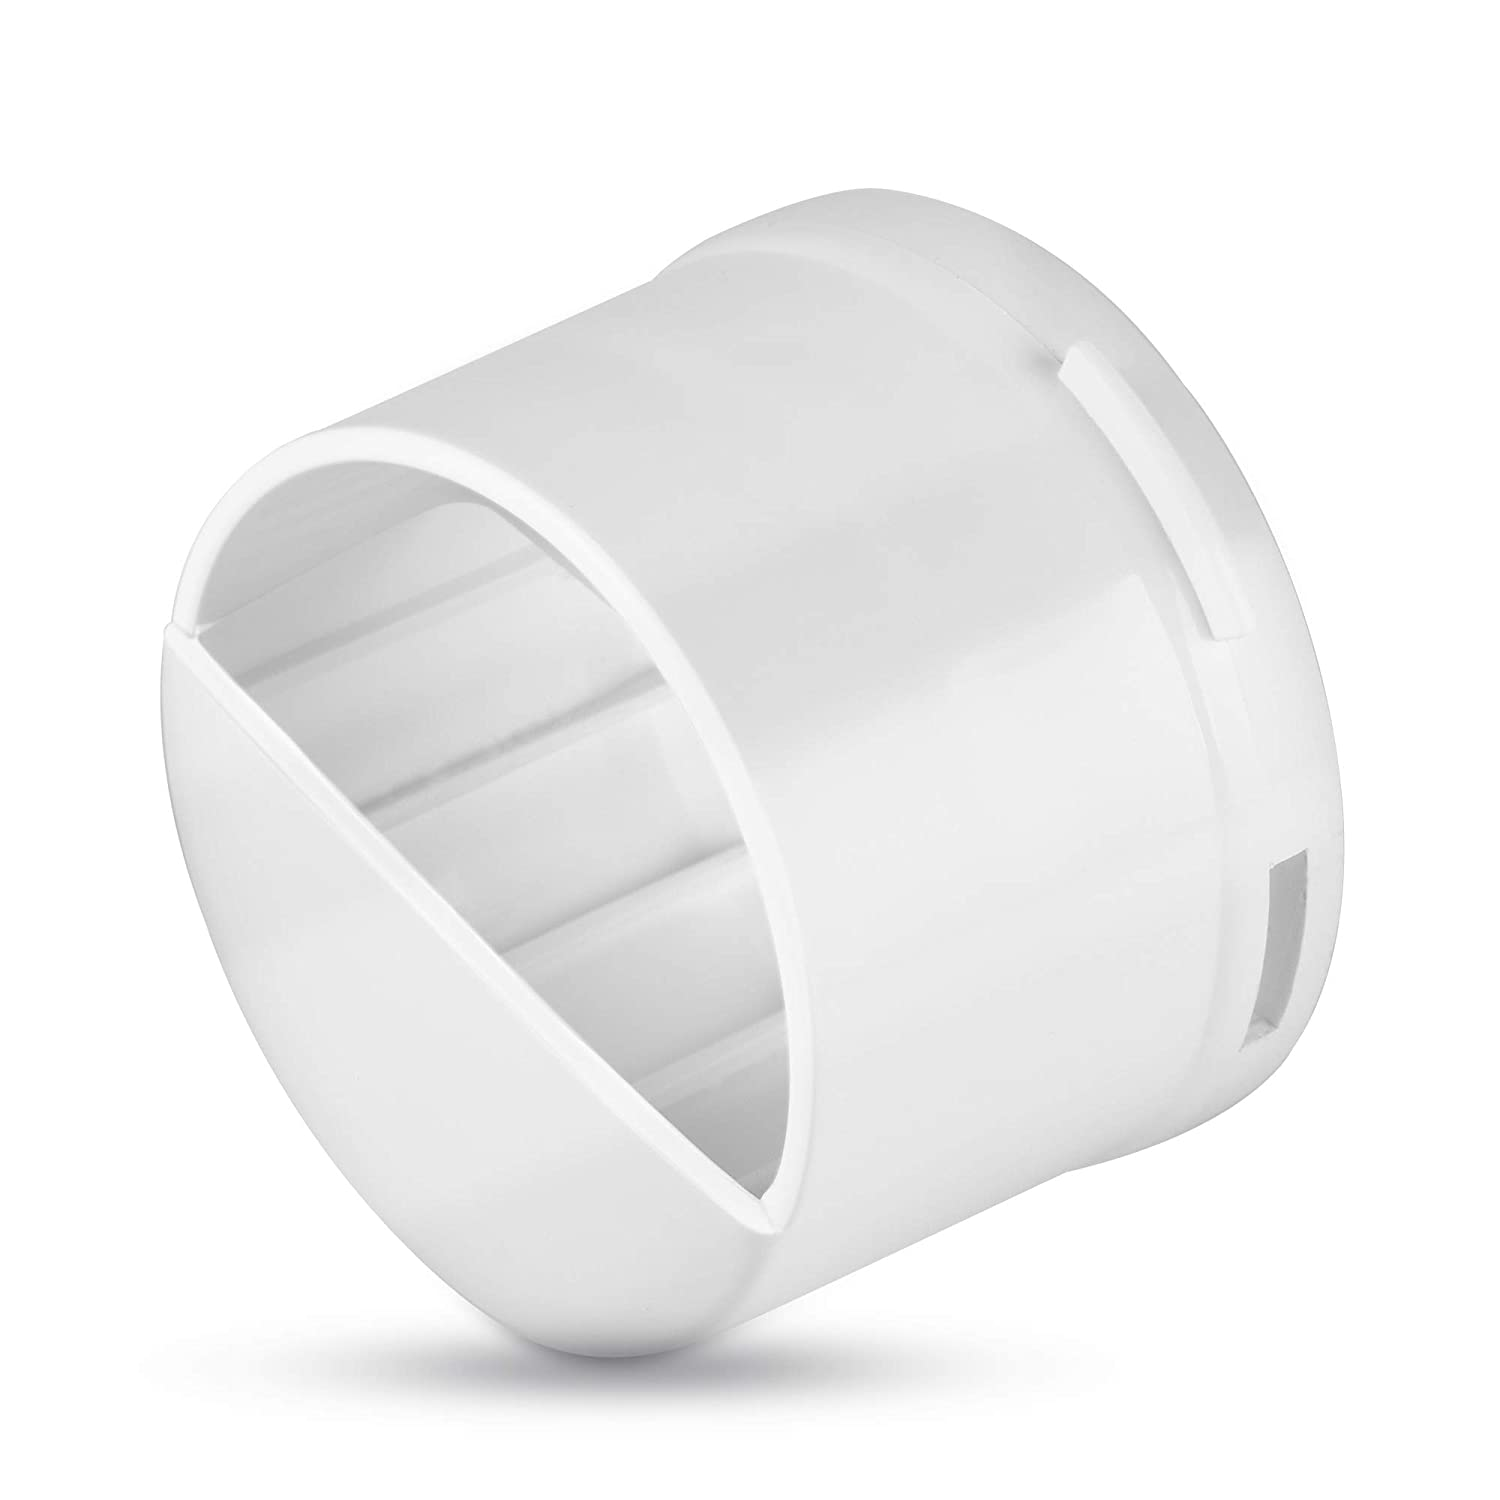 Coipur Whirlpool Water Filter Cap for Refrigerators Fits Most Whirlpool and Kenmore Side by Side Refrigerators 4396841,469020,W10121145 (White) 1 PC